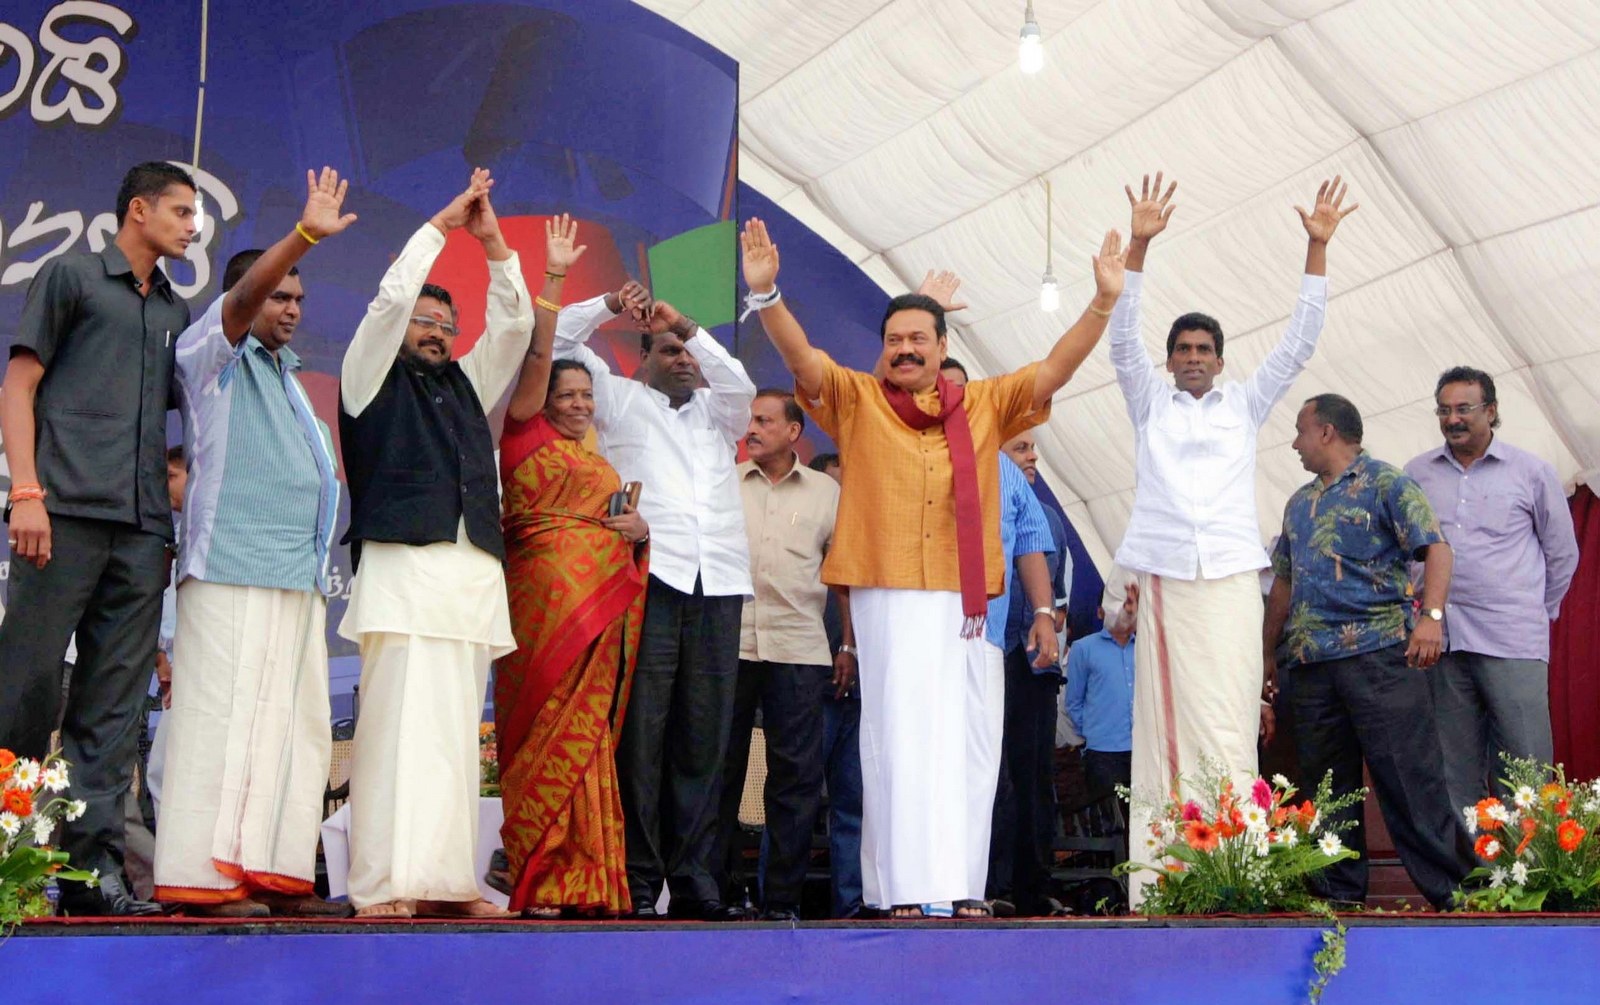 Incumbent Sri Lankan President Mahinda Rajapaksa waves to the crowd at a political rally. Via President Rajapaksa's flickr account.